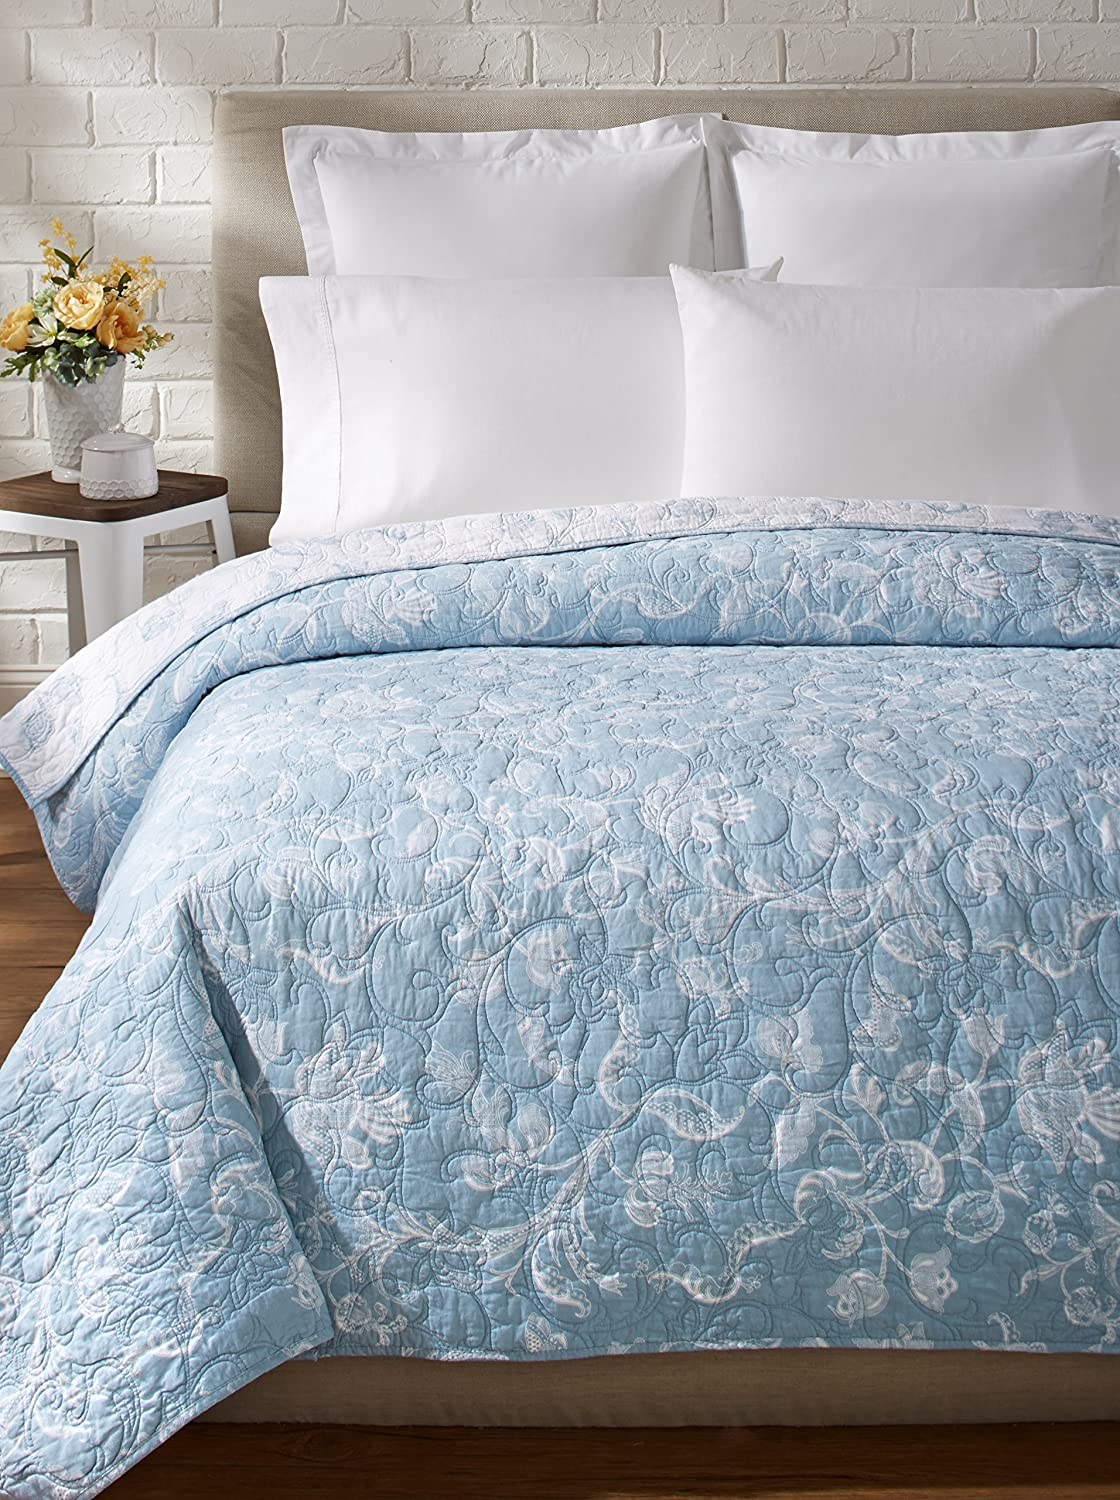 Eliza Lace Reversible Quilt, Blue/White, Full/Queen C&F Enterprises Inc.